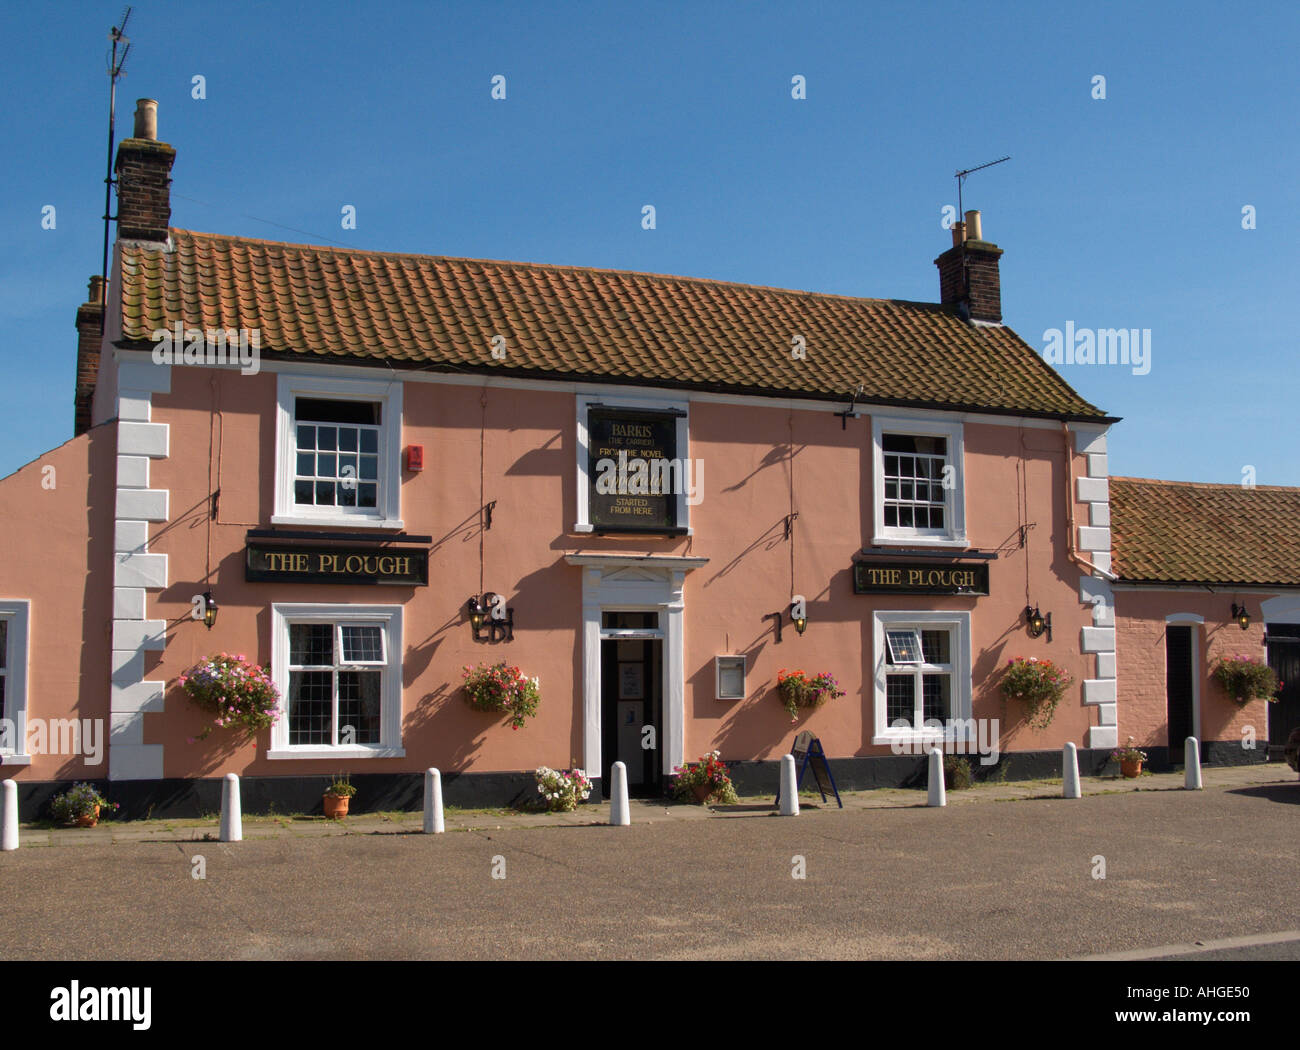 blundeston plough pub charles dickens started writing barks the blundeston plough pub charles dickens started writing barks the carrier from the novel david copperfield